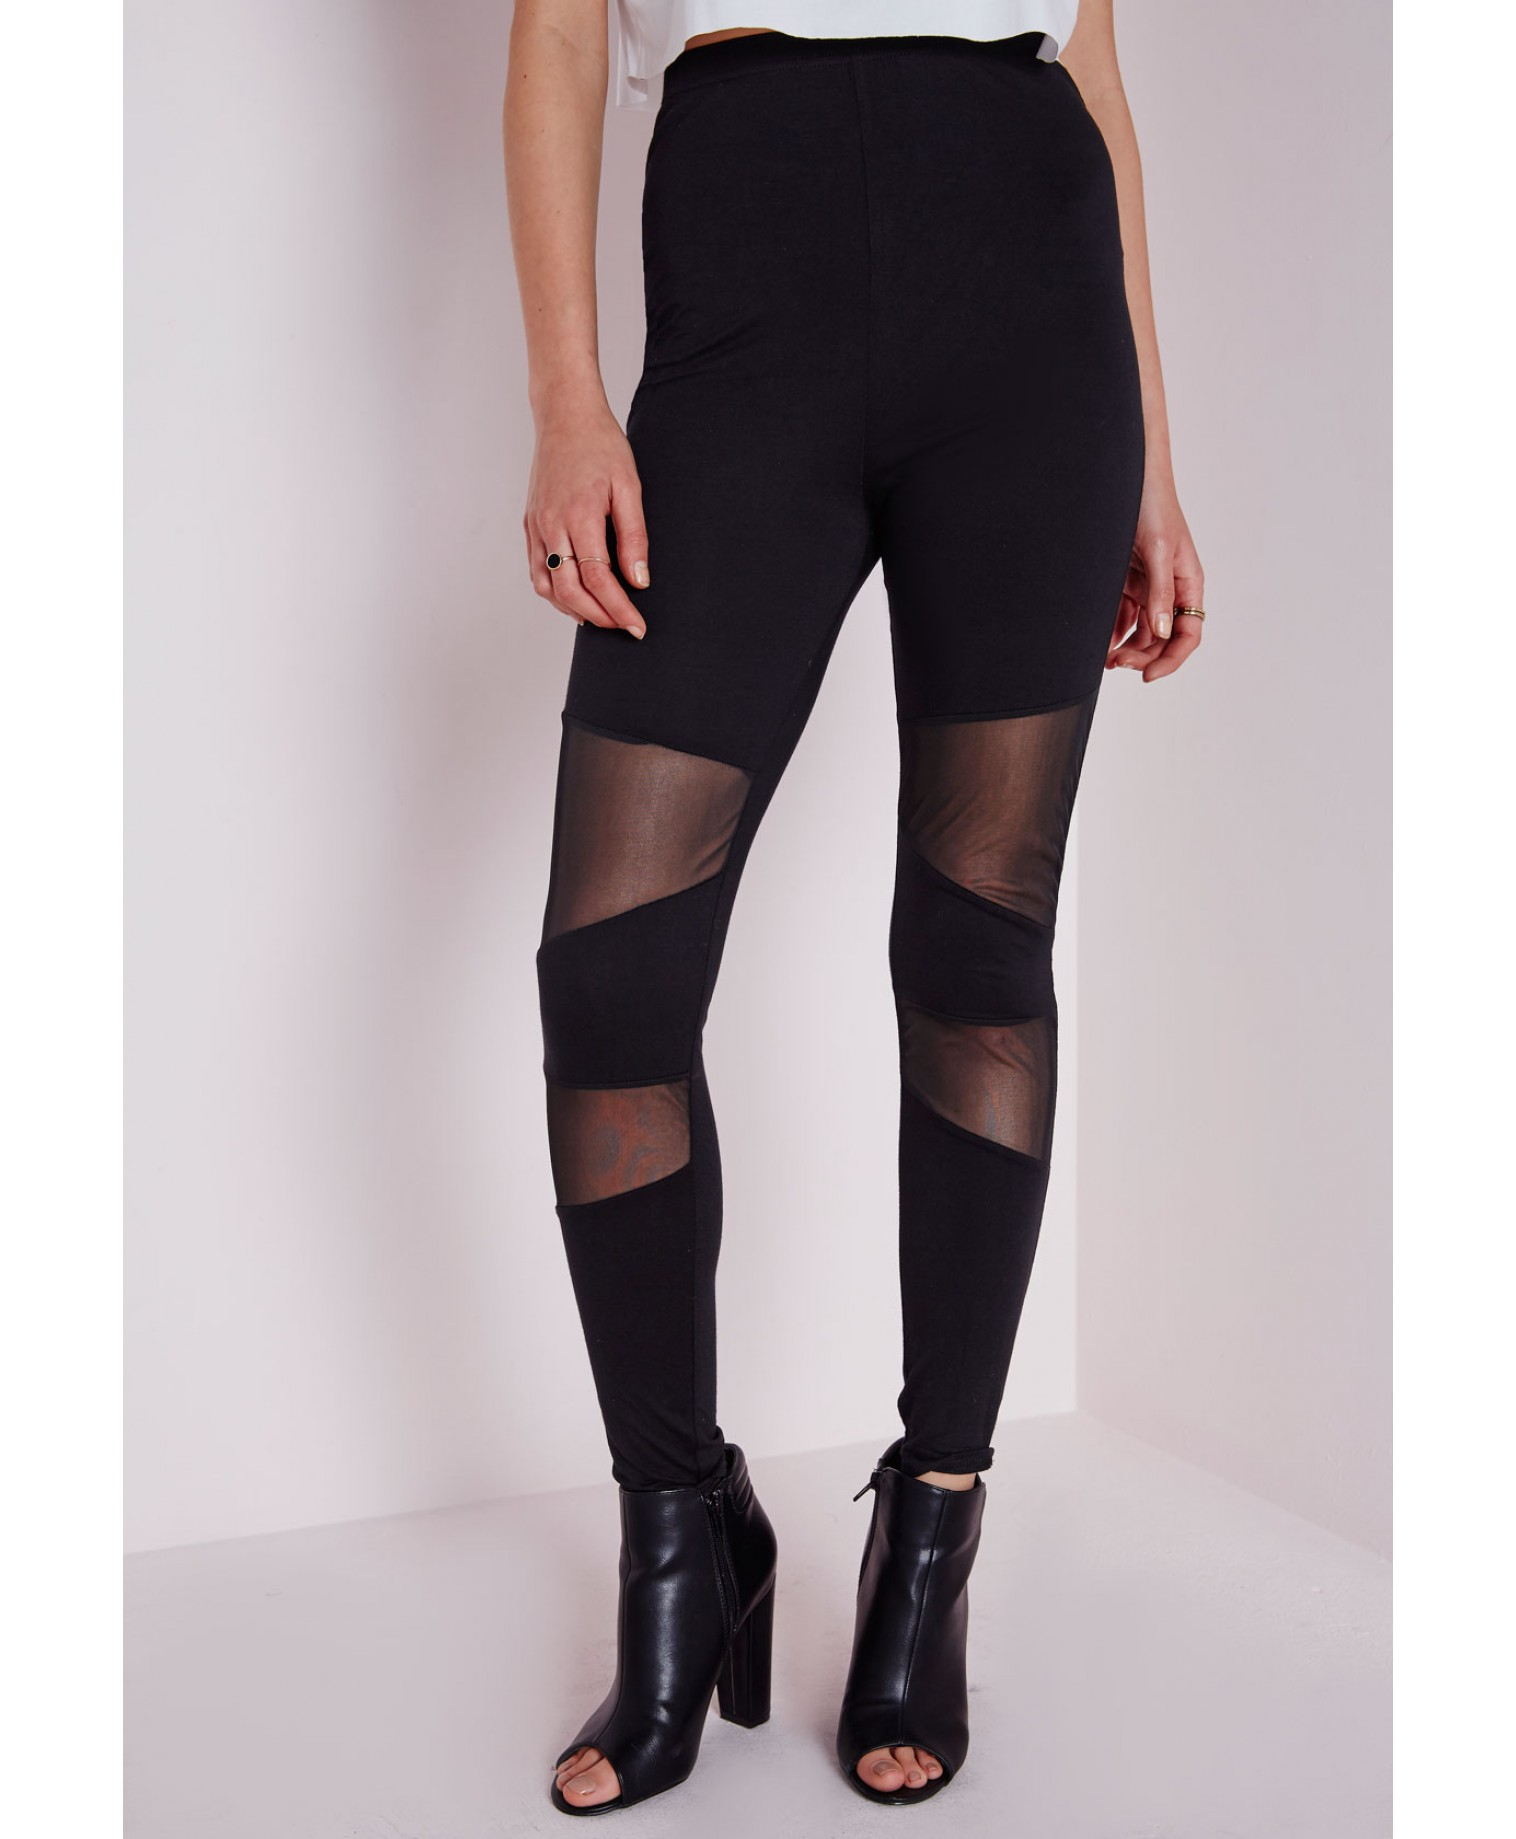 Missguided High Waist Mesh Panel Leggings Black in Black | Lyst